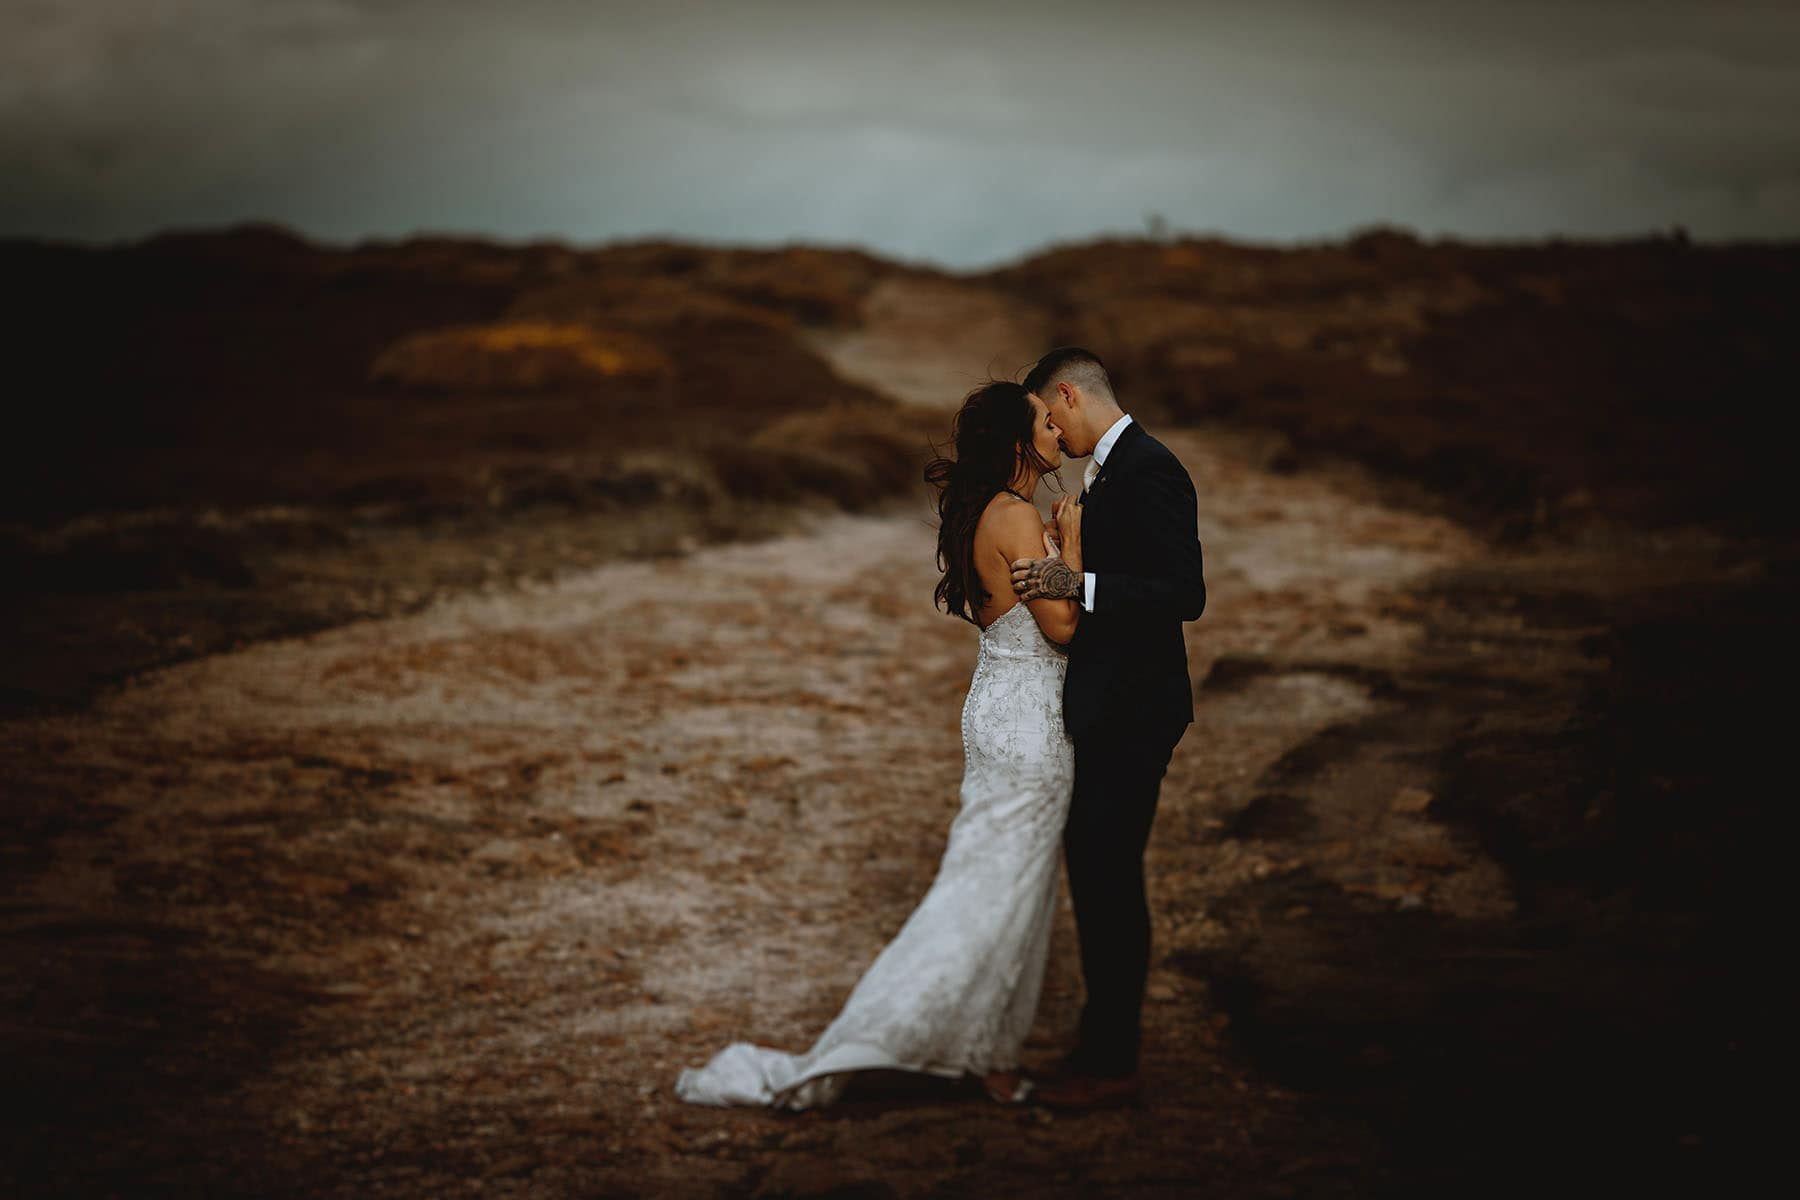 bride and groom stood together in llove in a barren rockey landscape